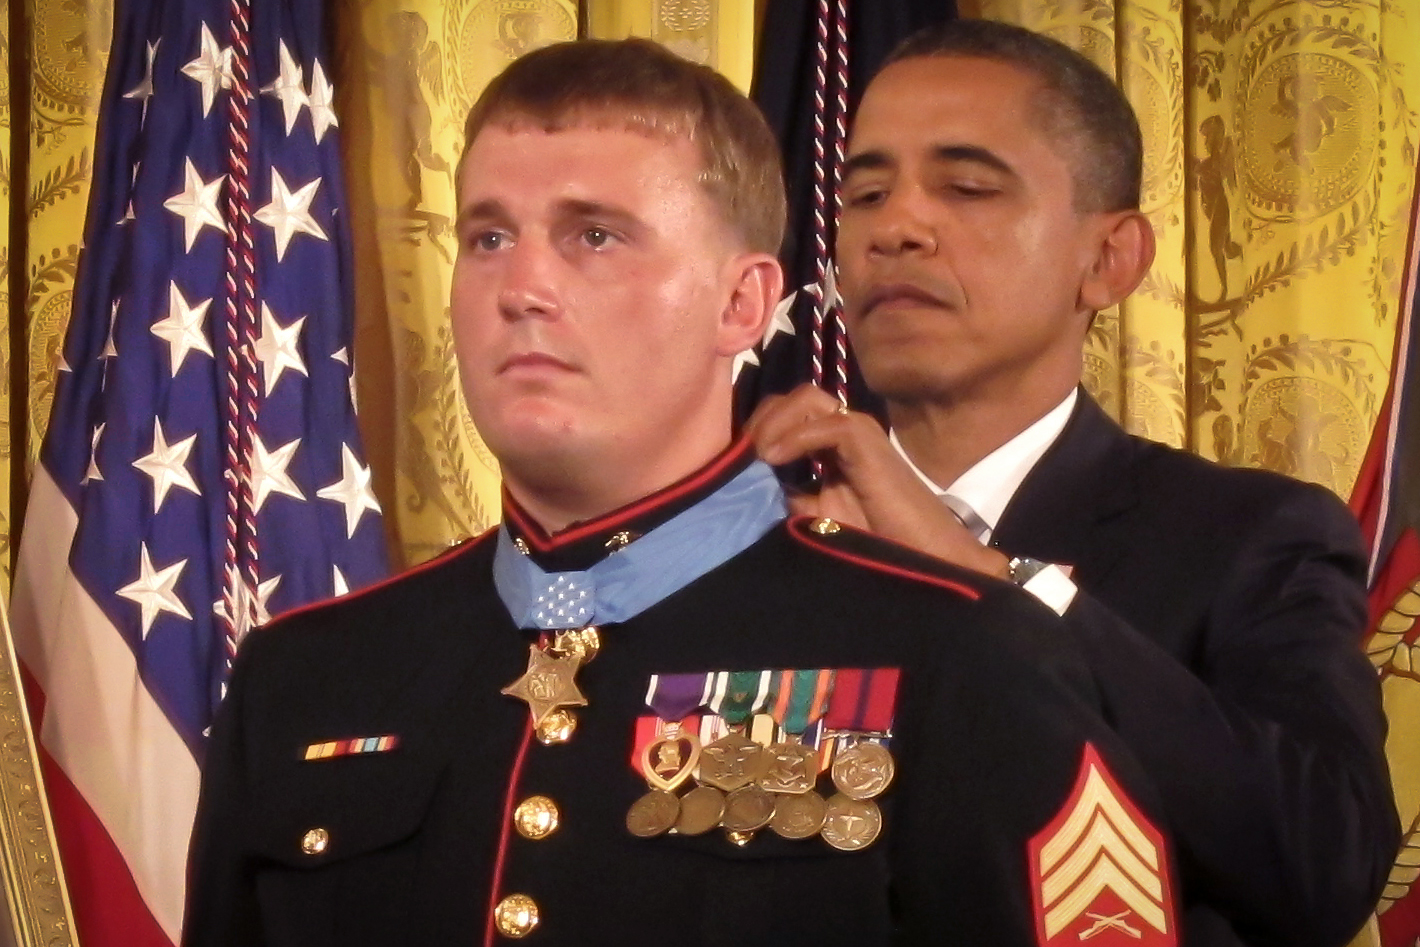 medal of honor receiver